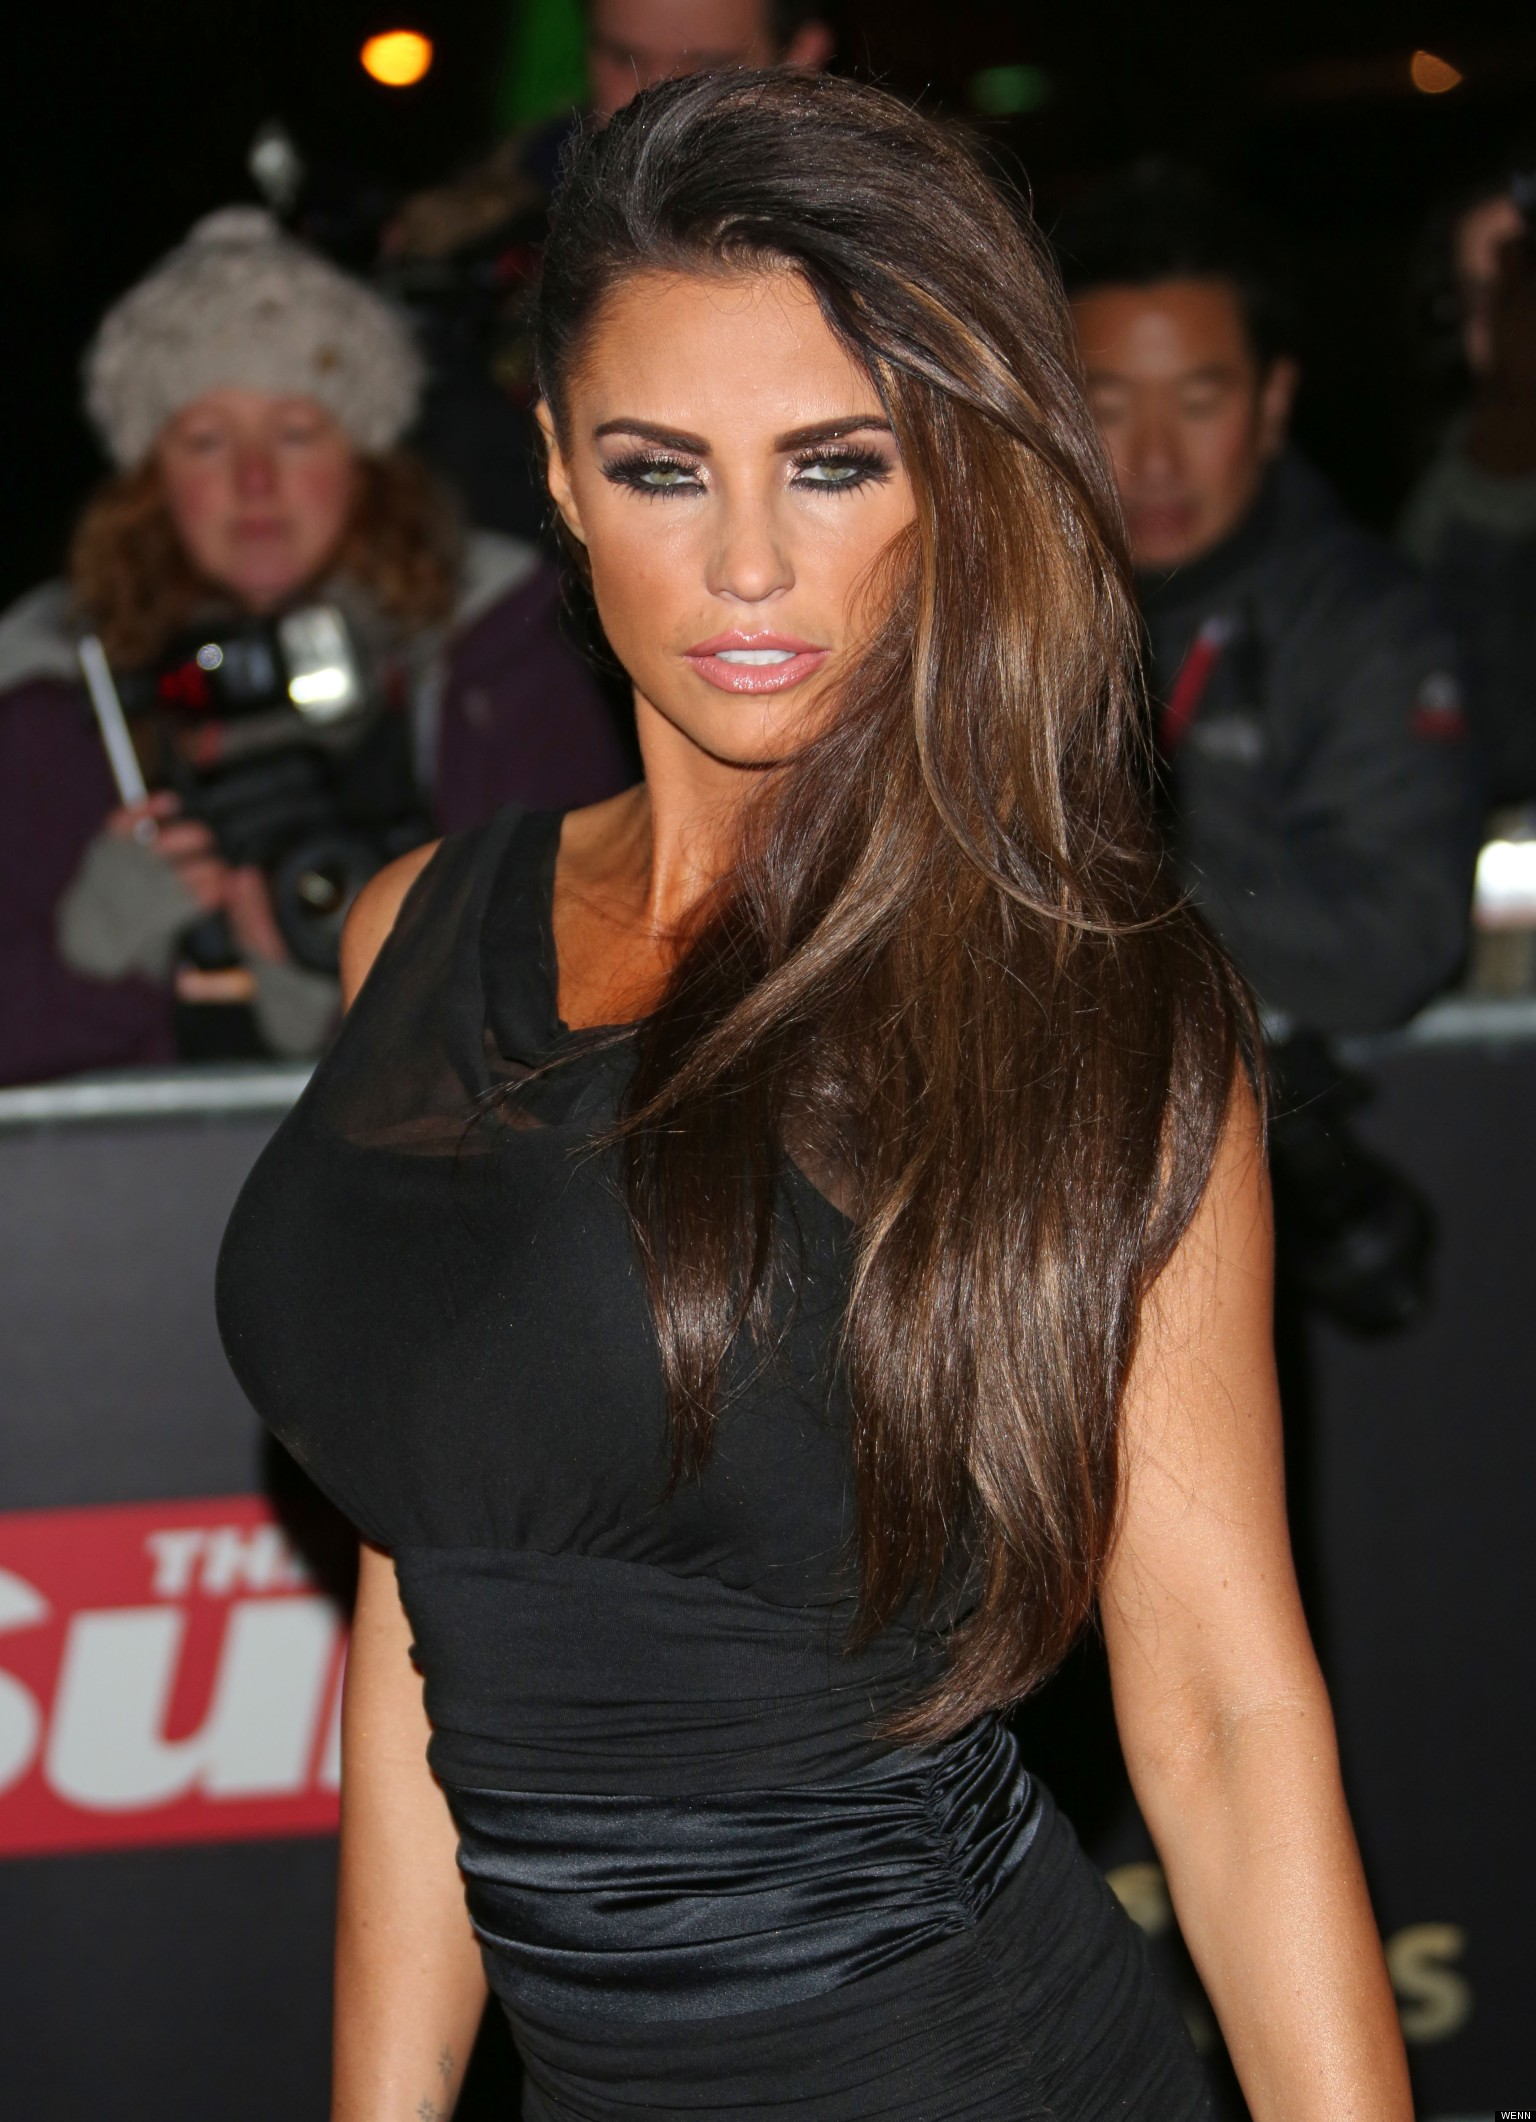 katie price instagram